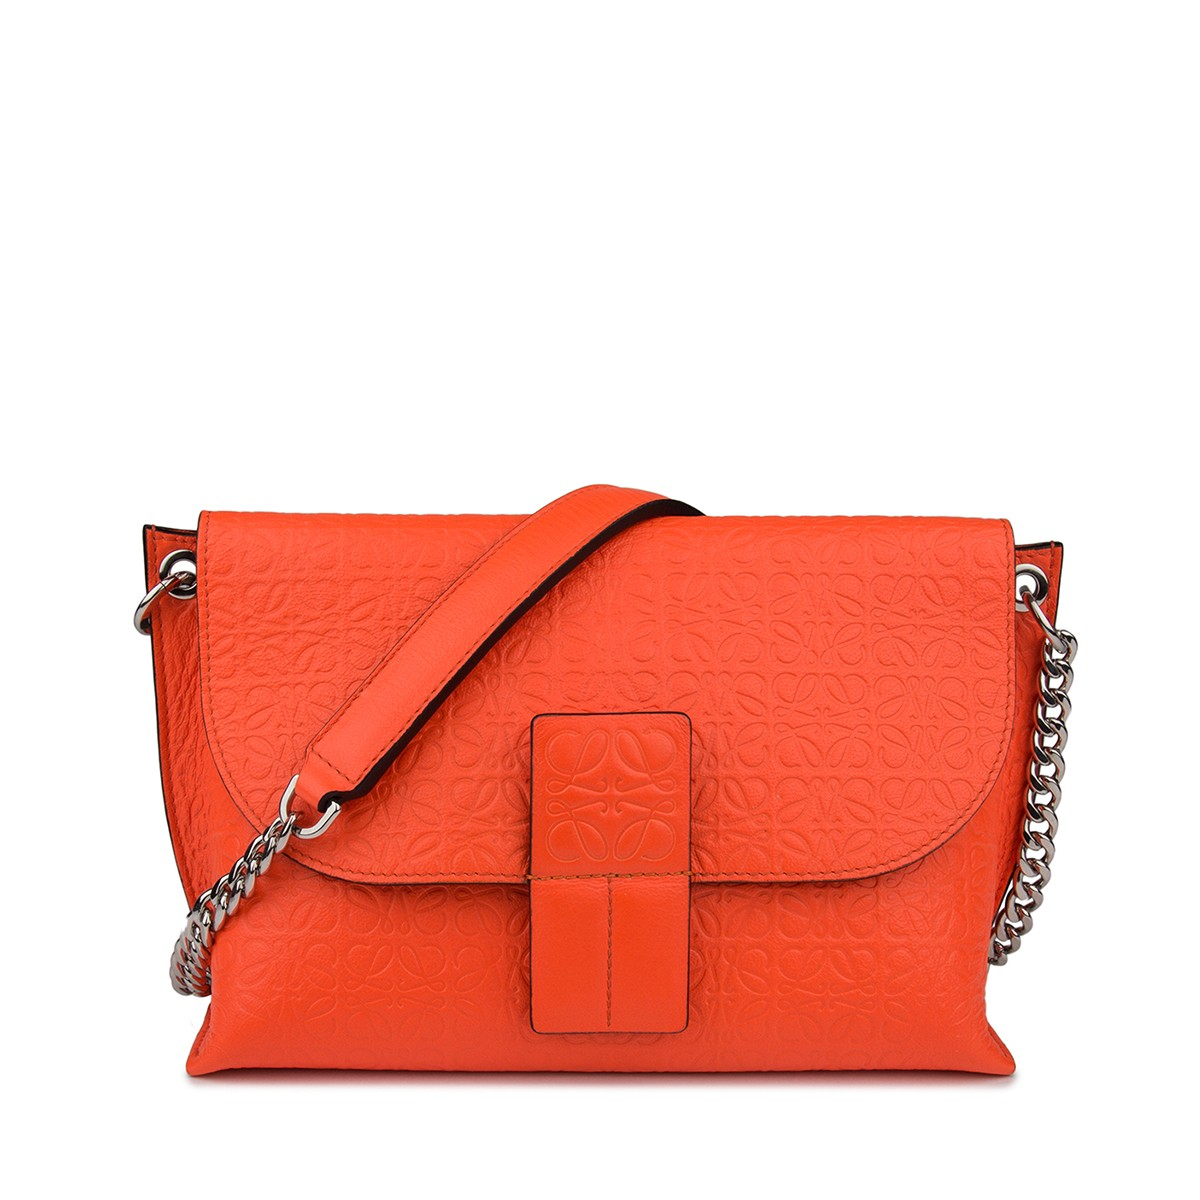 Avenue Bag in Orange